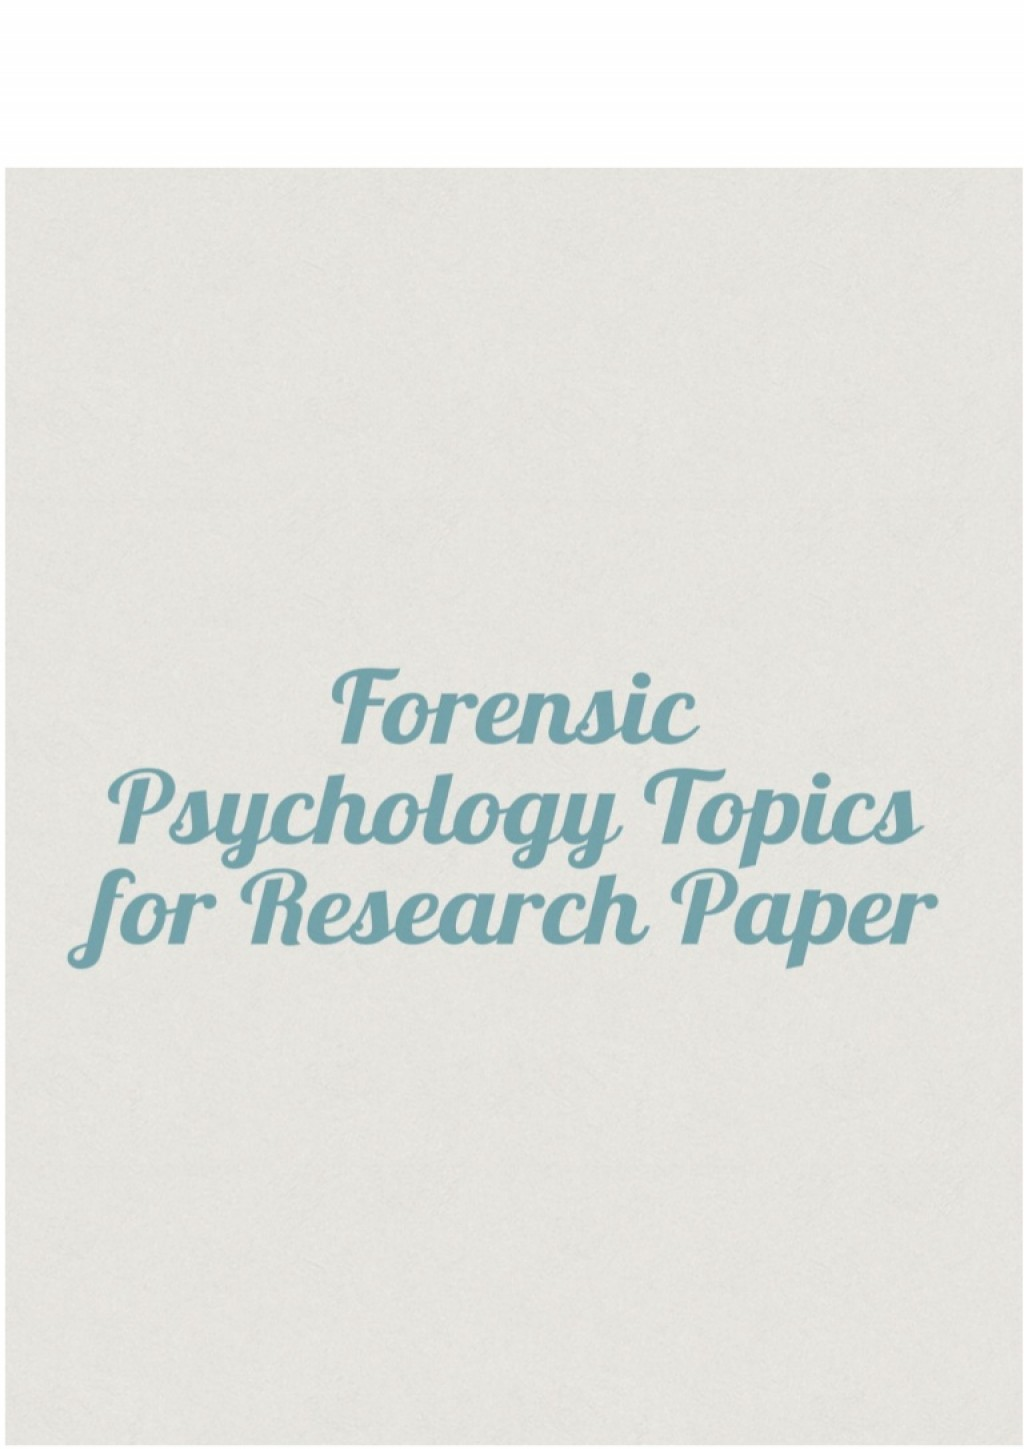 008 Psychology Topics For Research Paper Forensicpsychologytopicsforresearchpaper Thumbnail Wondrous Health Cognitive Papers Potential Developmental Large